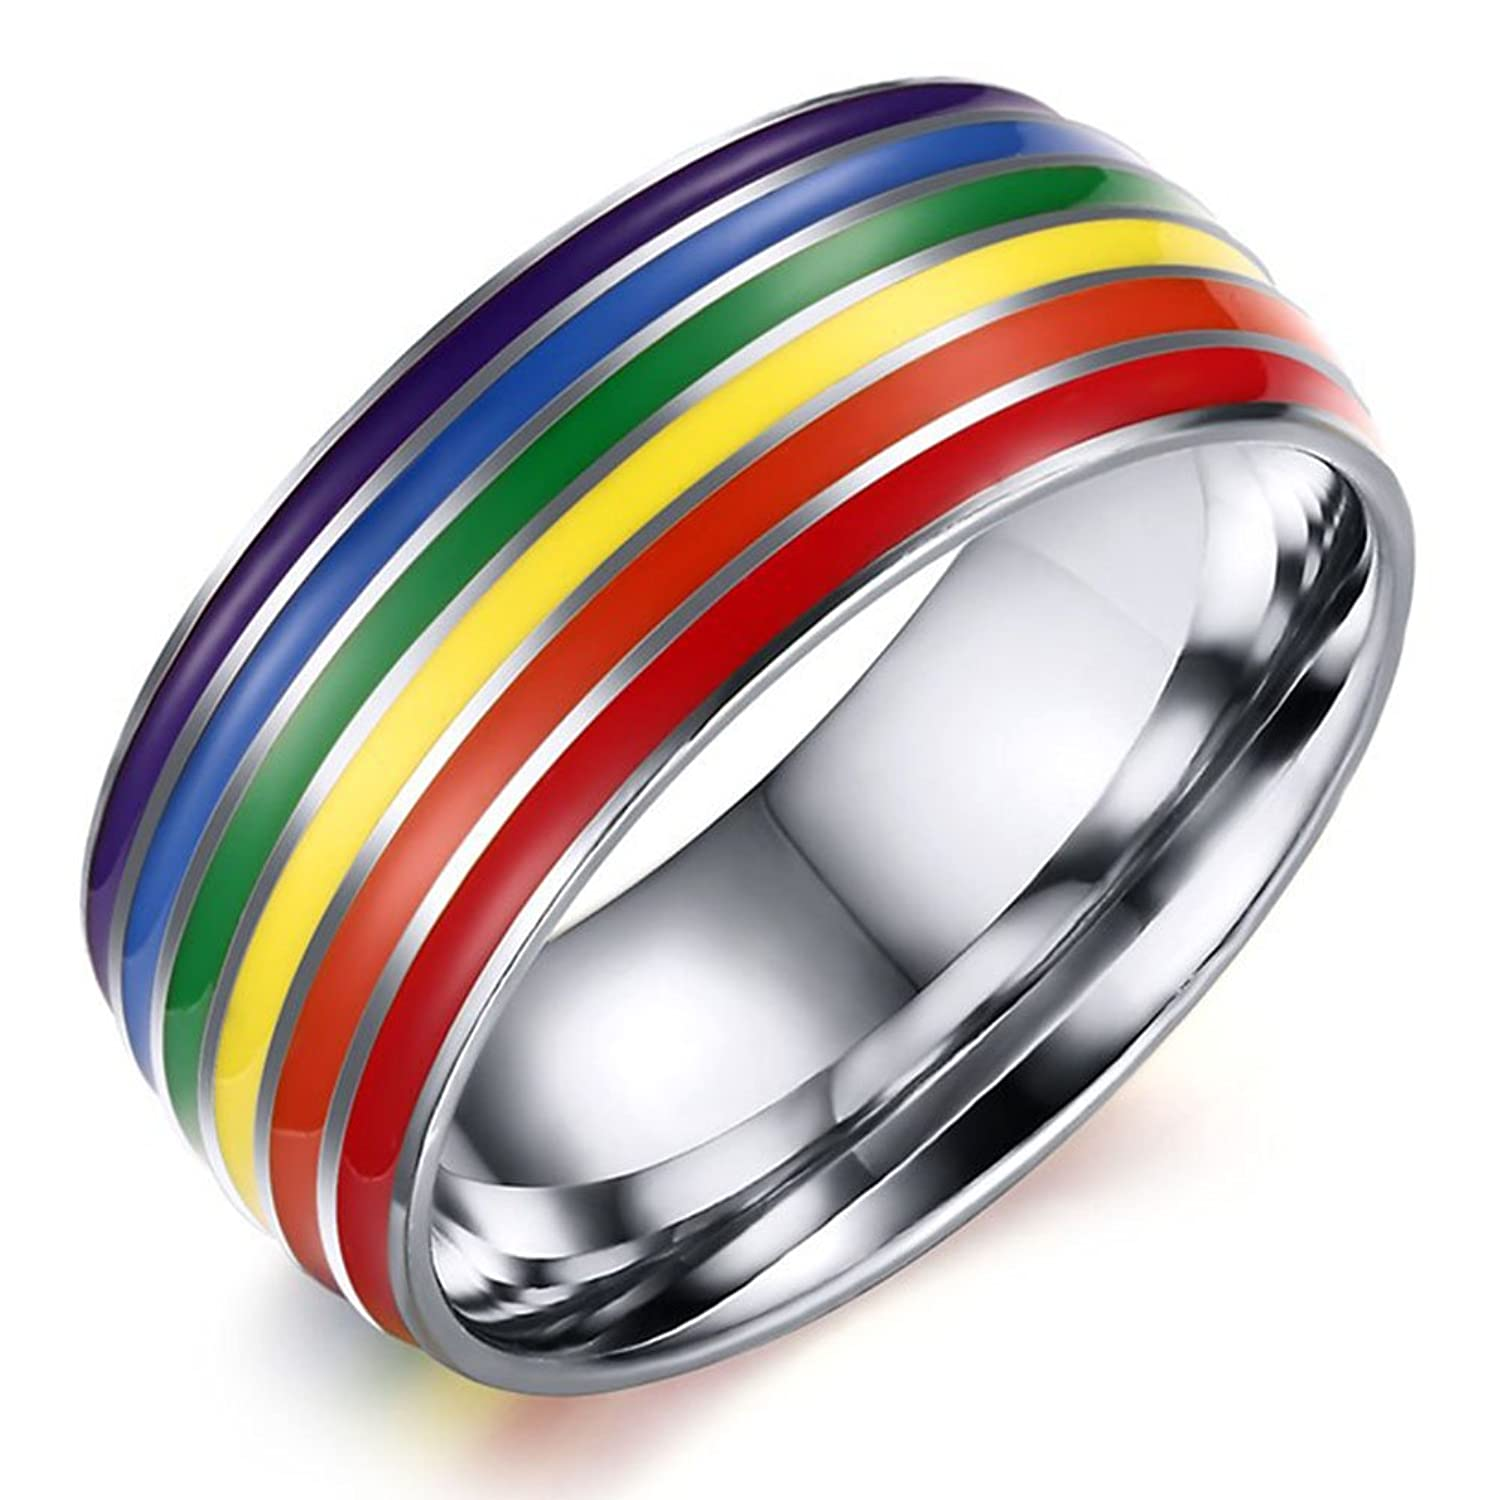 8mm titanium stainless steel rainbow enamel gay lesbian wedding engagement promise band lgbt pride ringamazoncom - Gay Wedding Ring